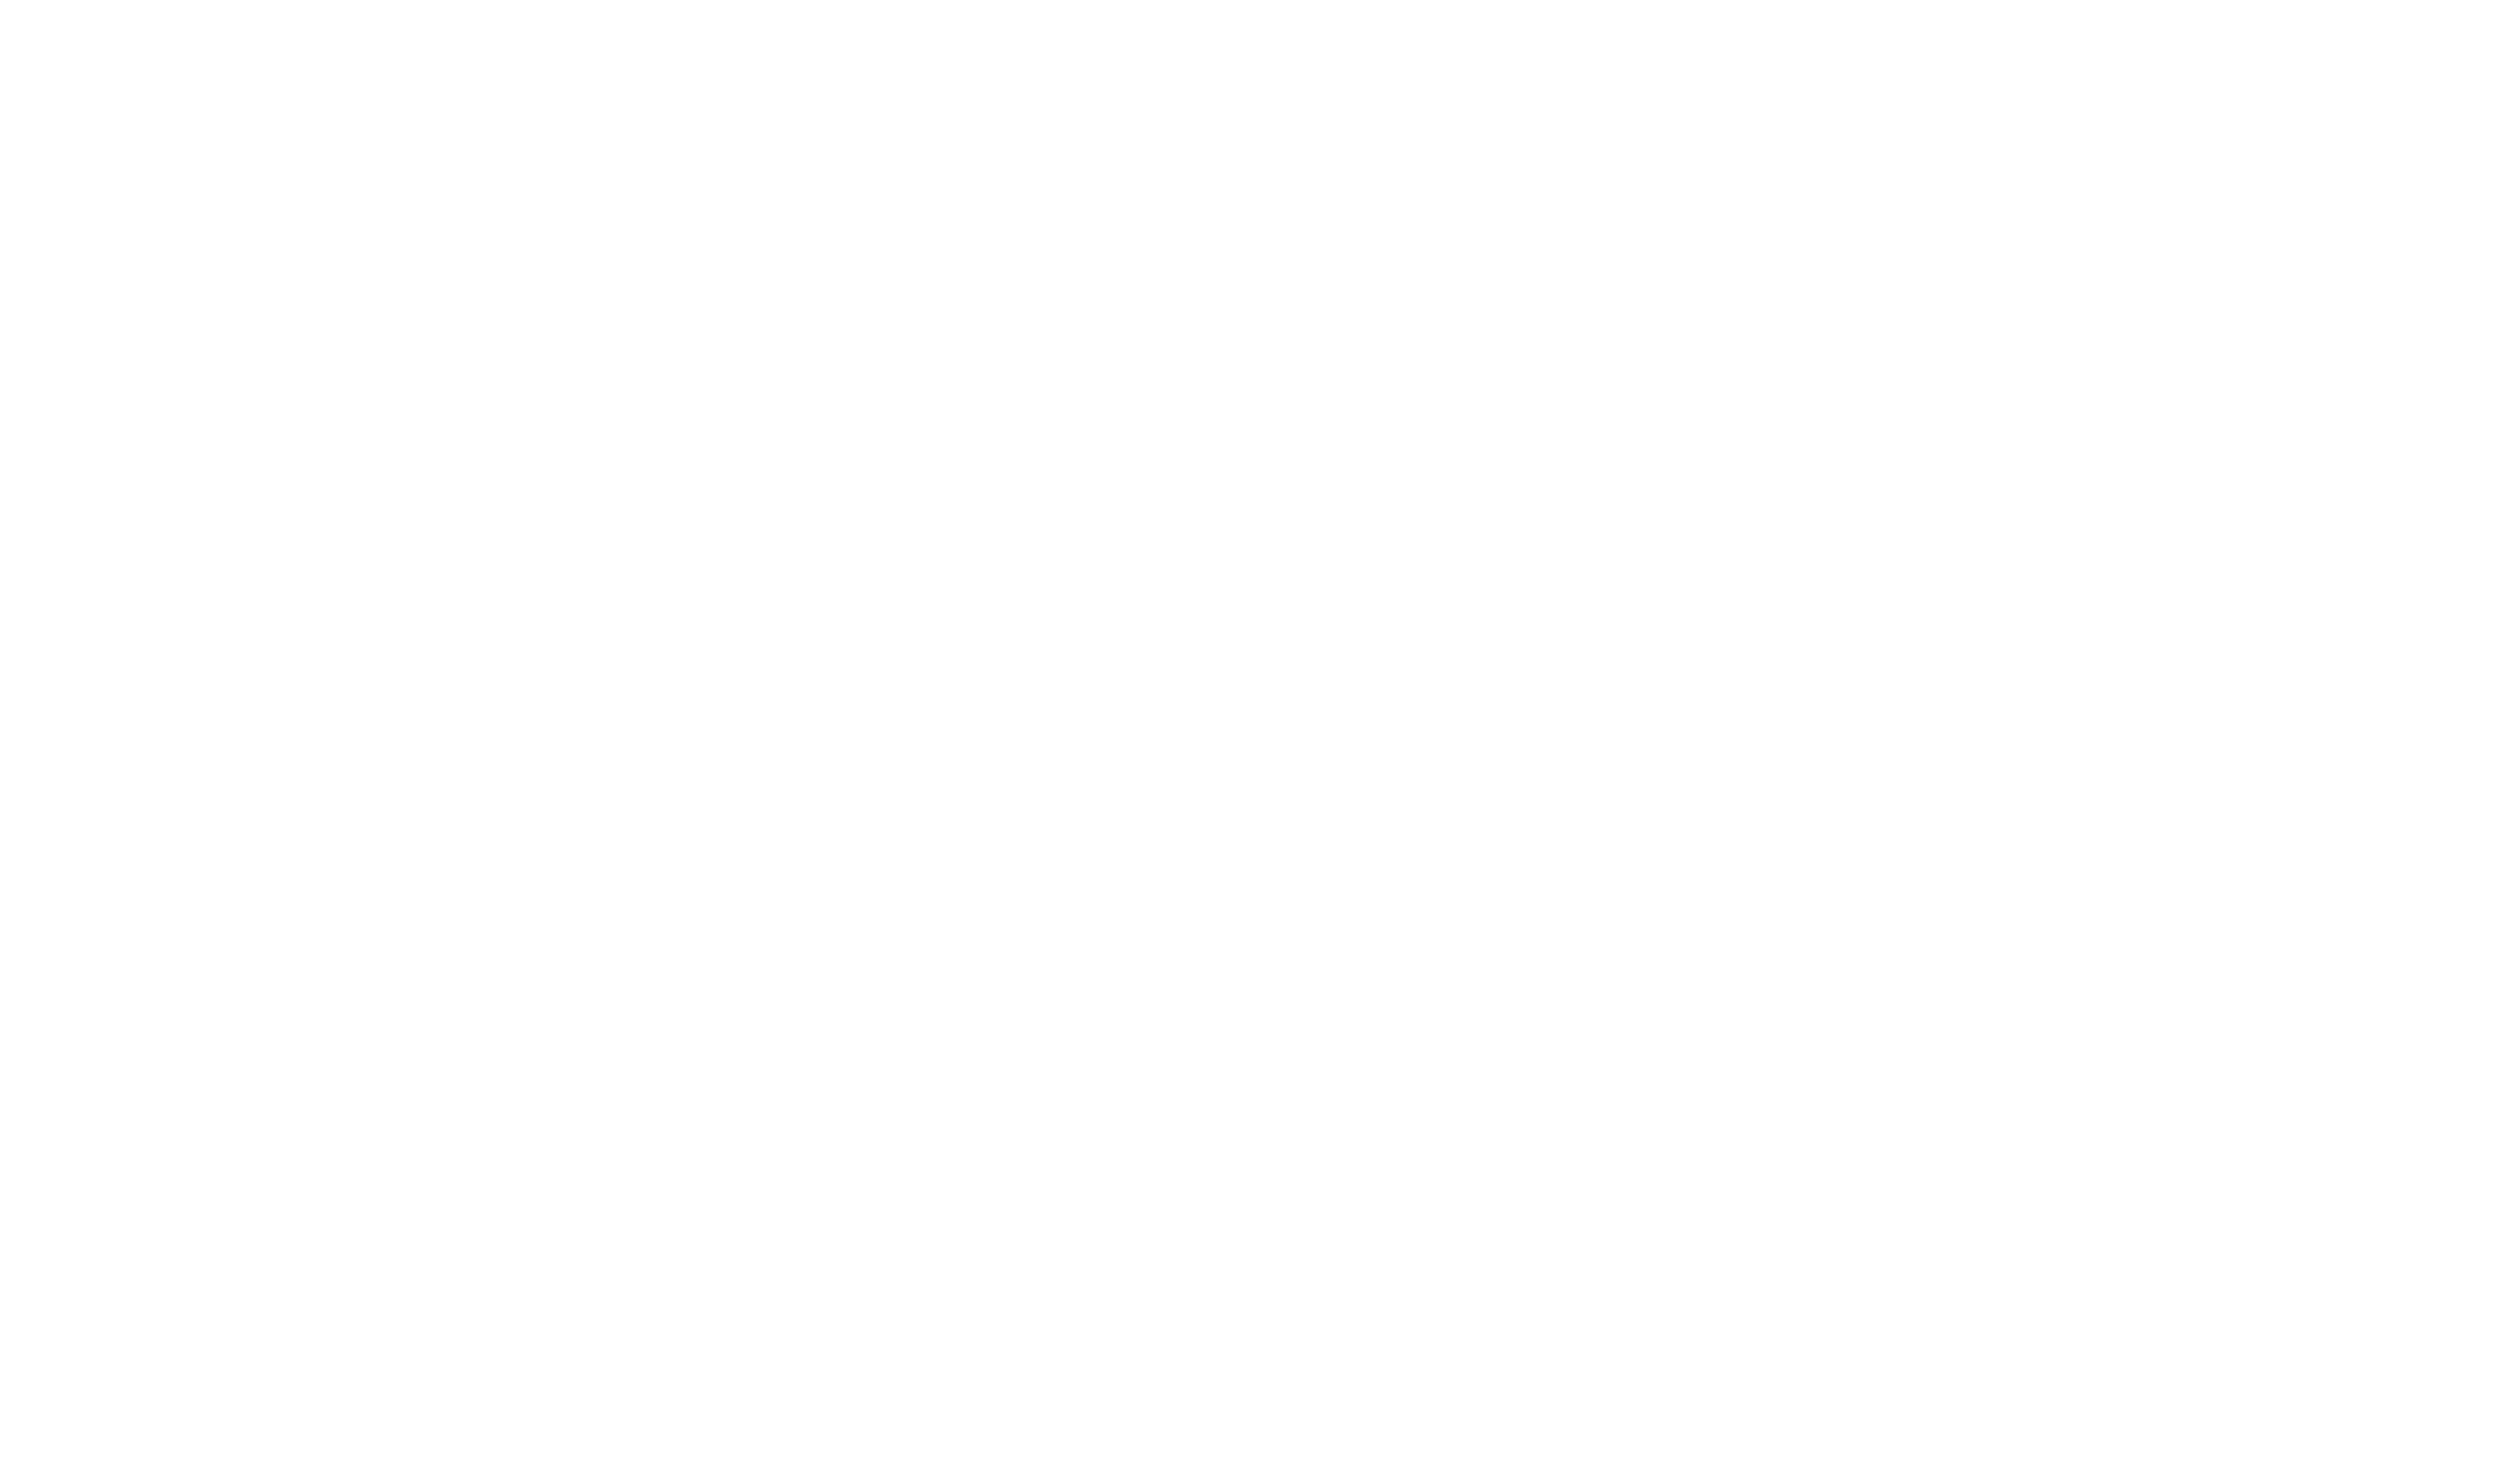 Relationship Psychology